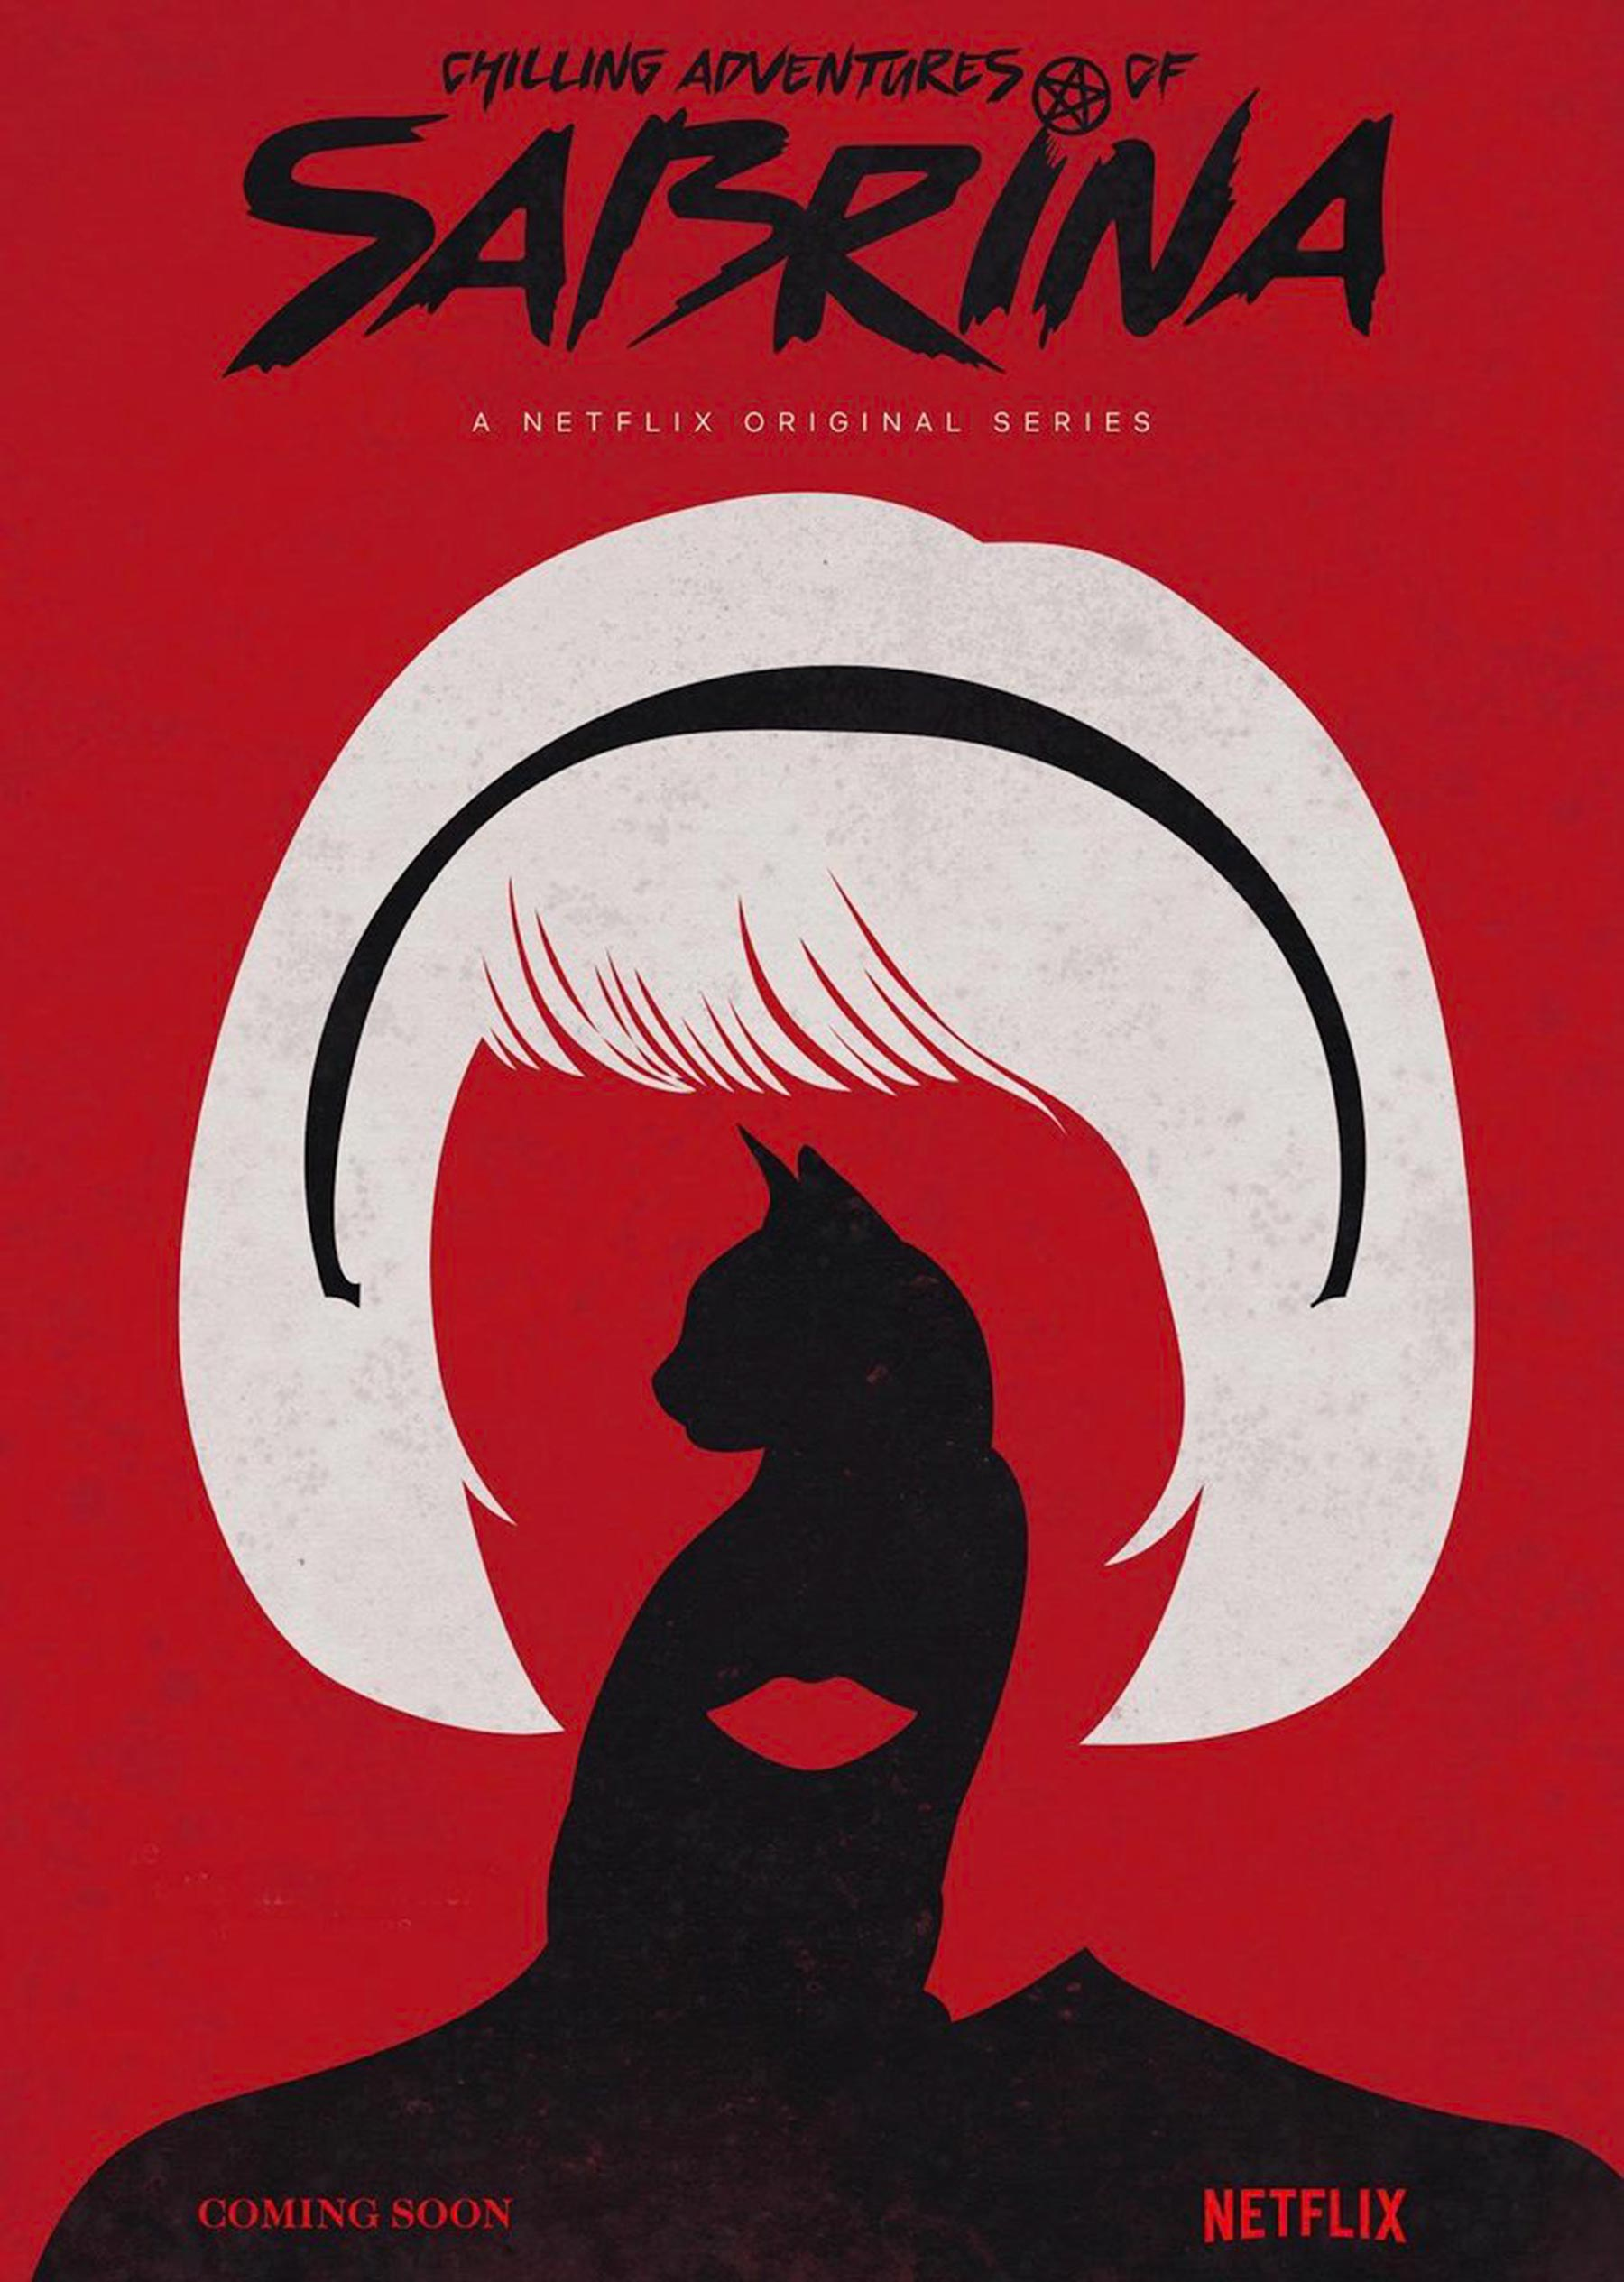 Favorite Shows for #Spooktober: The Chilling Adventures of Sabrina